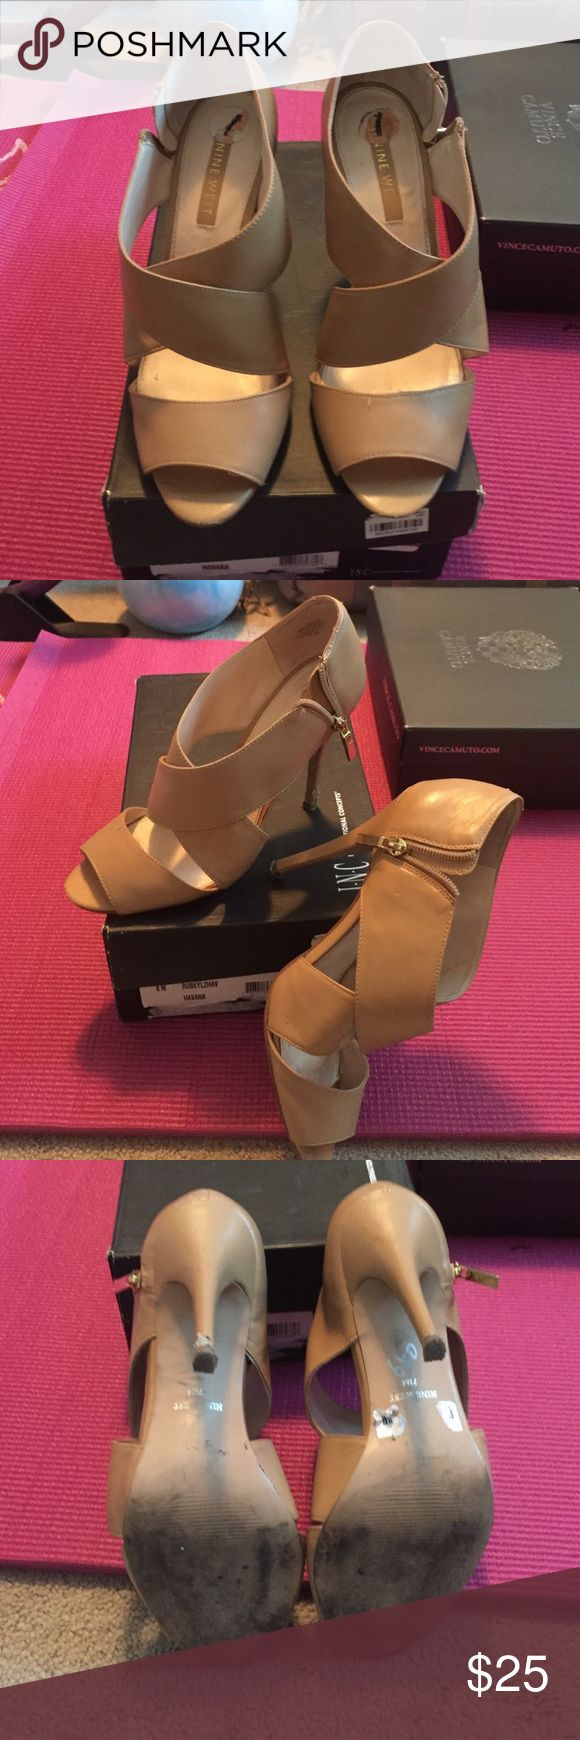 "Nine West Cream High Heel Sandal 4"" Nine West Nude Sandal good condition small scuff on left heel Nine West Shoes Heels"